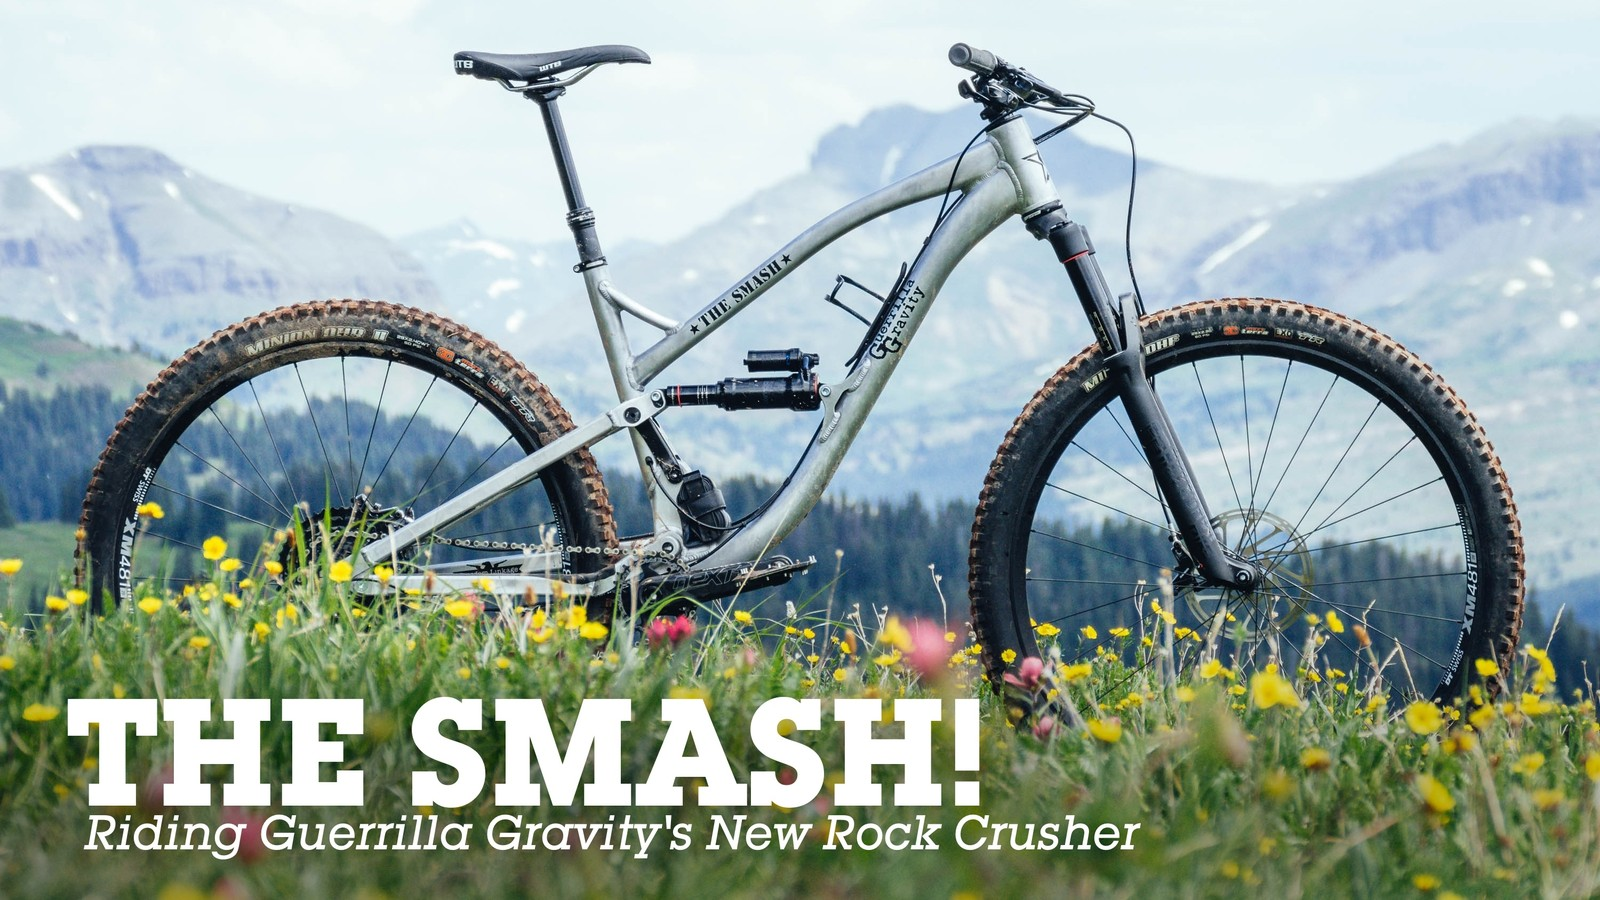 THE SMASH! Riding Guerrilla Gravity's New Rock Crusher